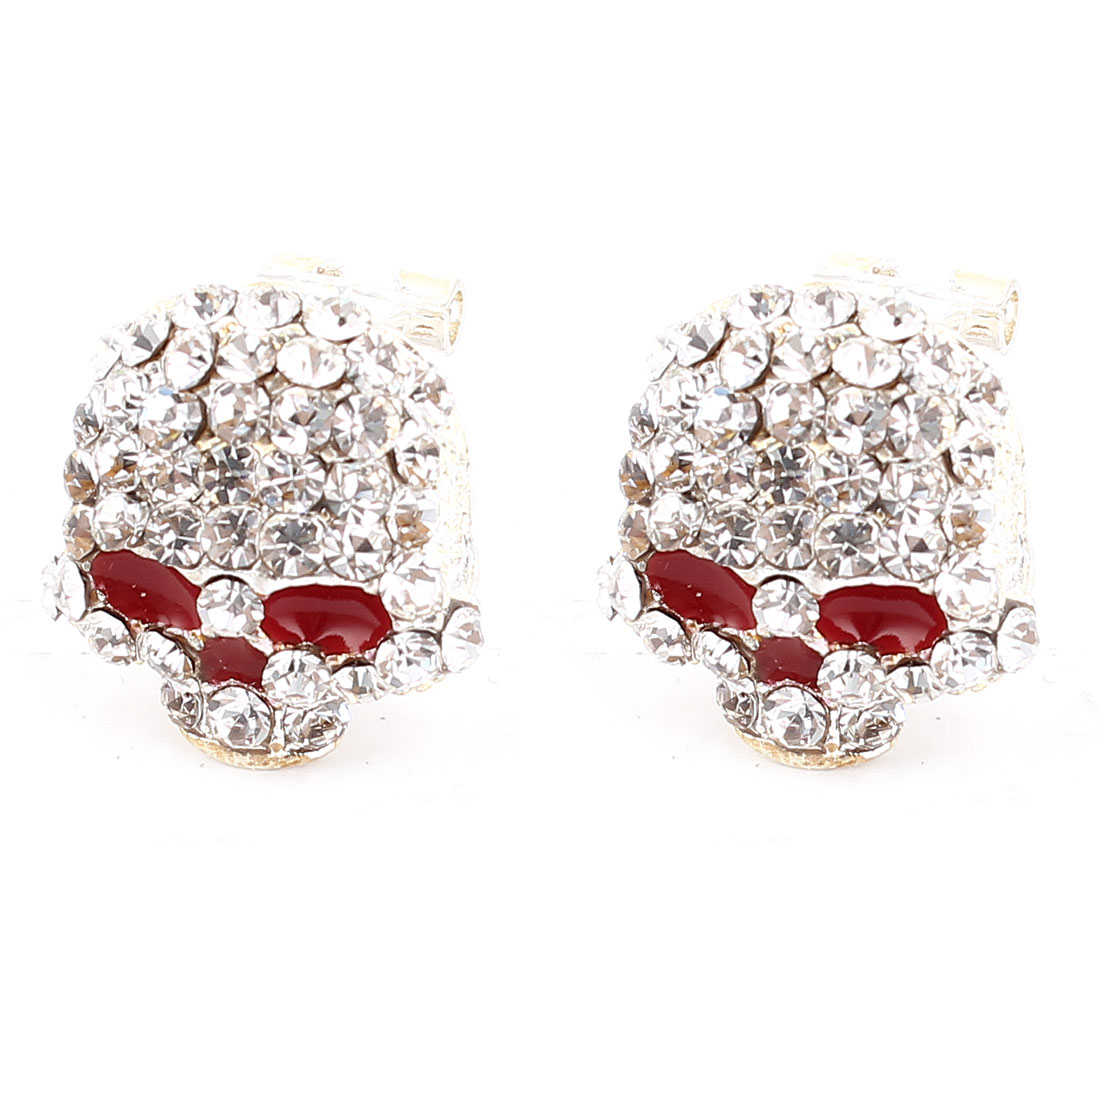 Pair Clear Rhinestone Accent Skeleton Shaped Silver Tone Metal Clip Earrings for Woman